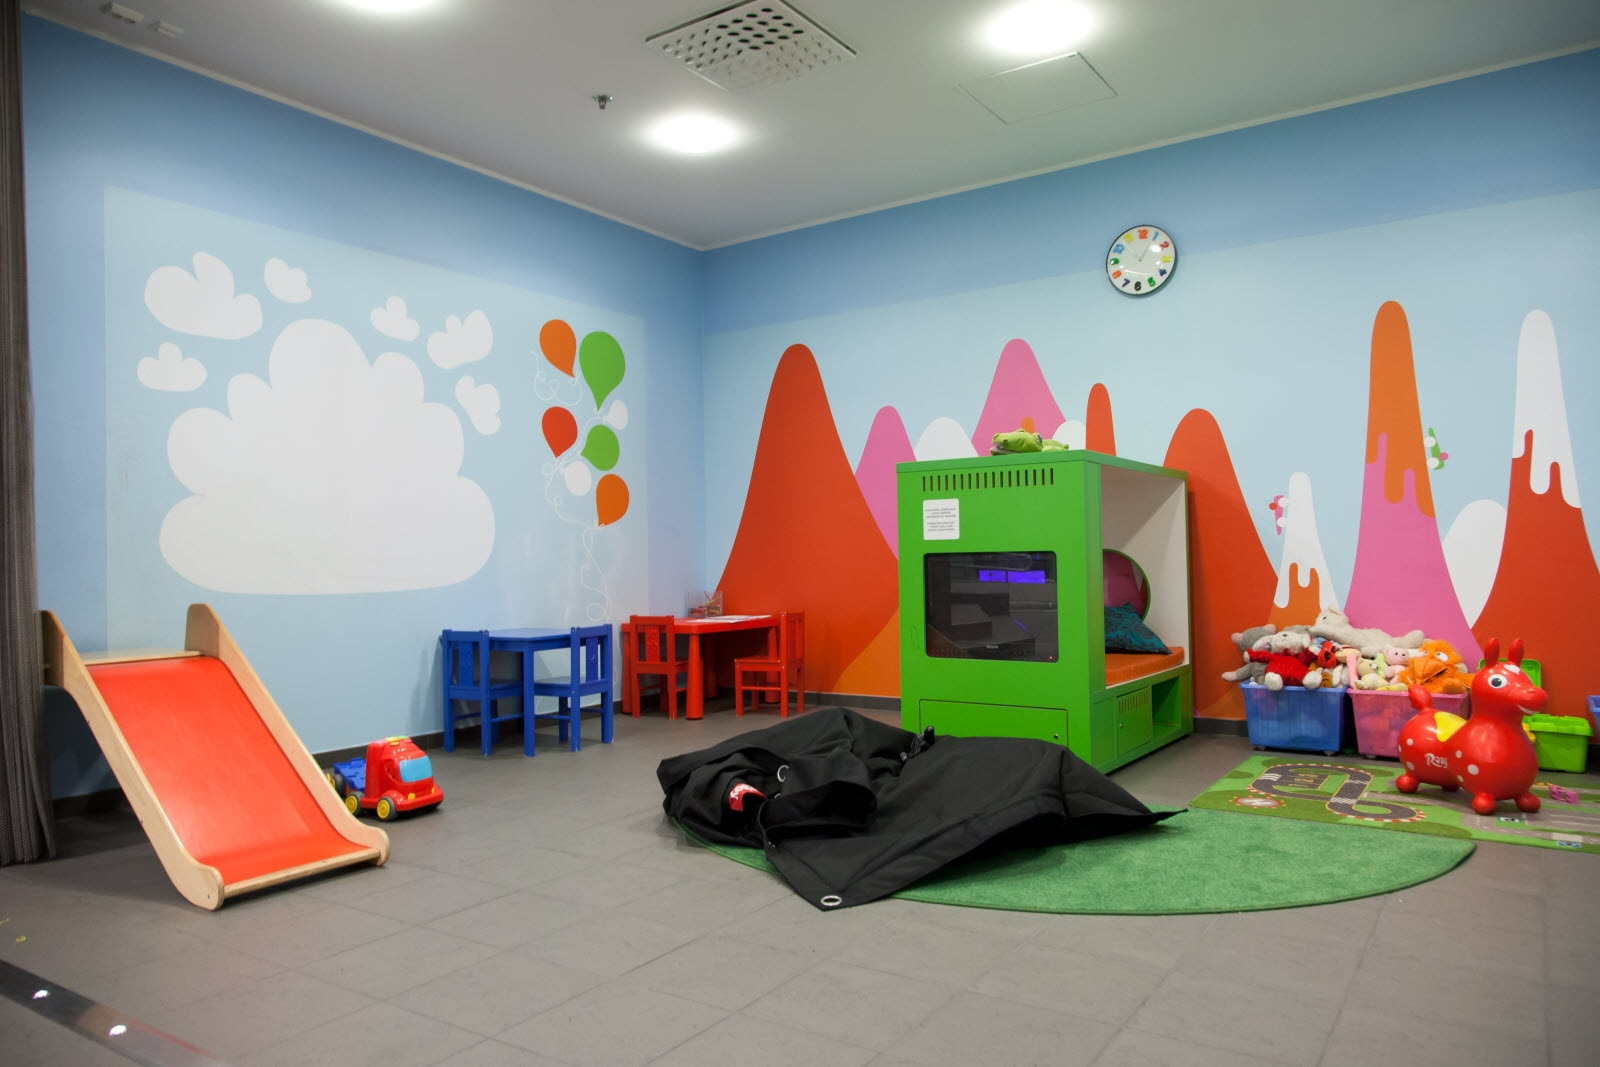 Scandic Julia, playroom